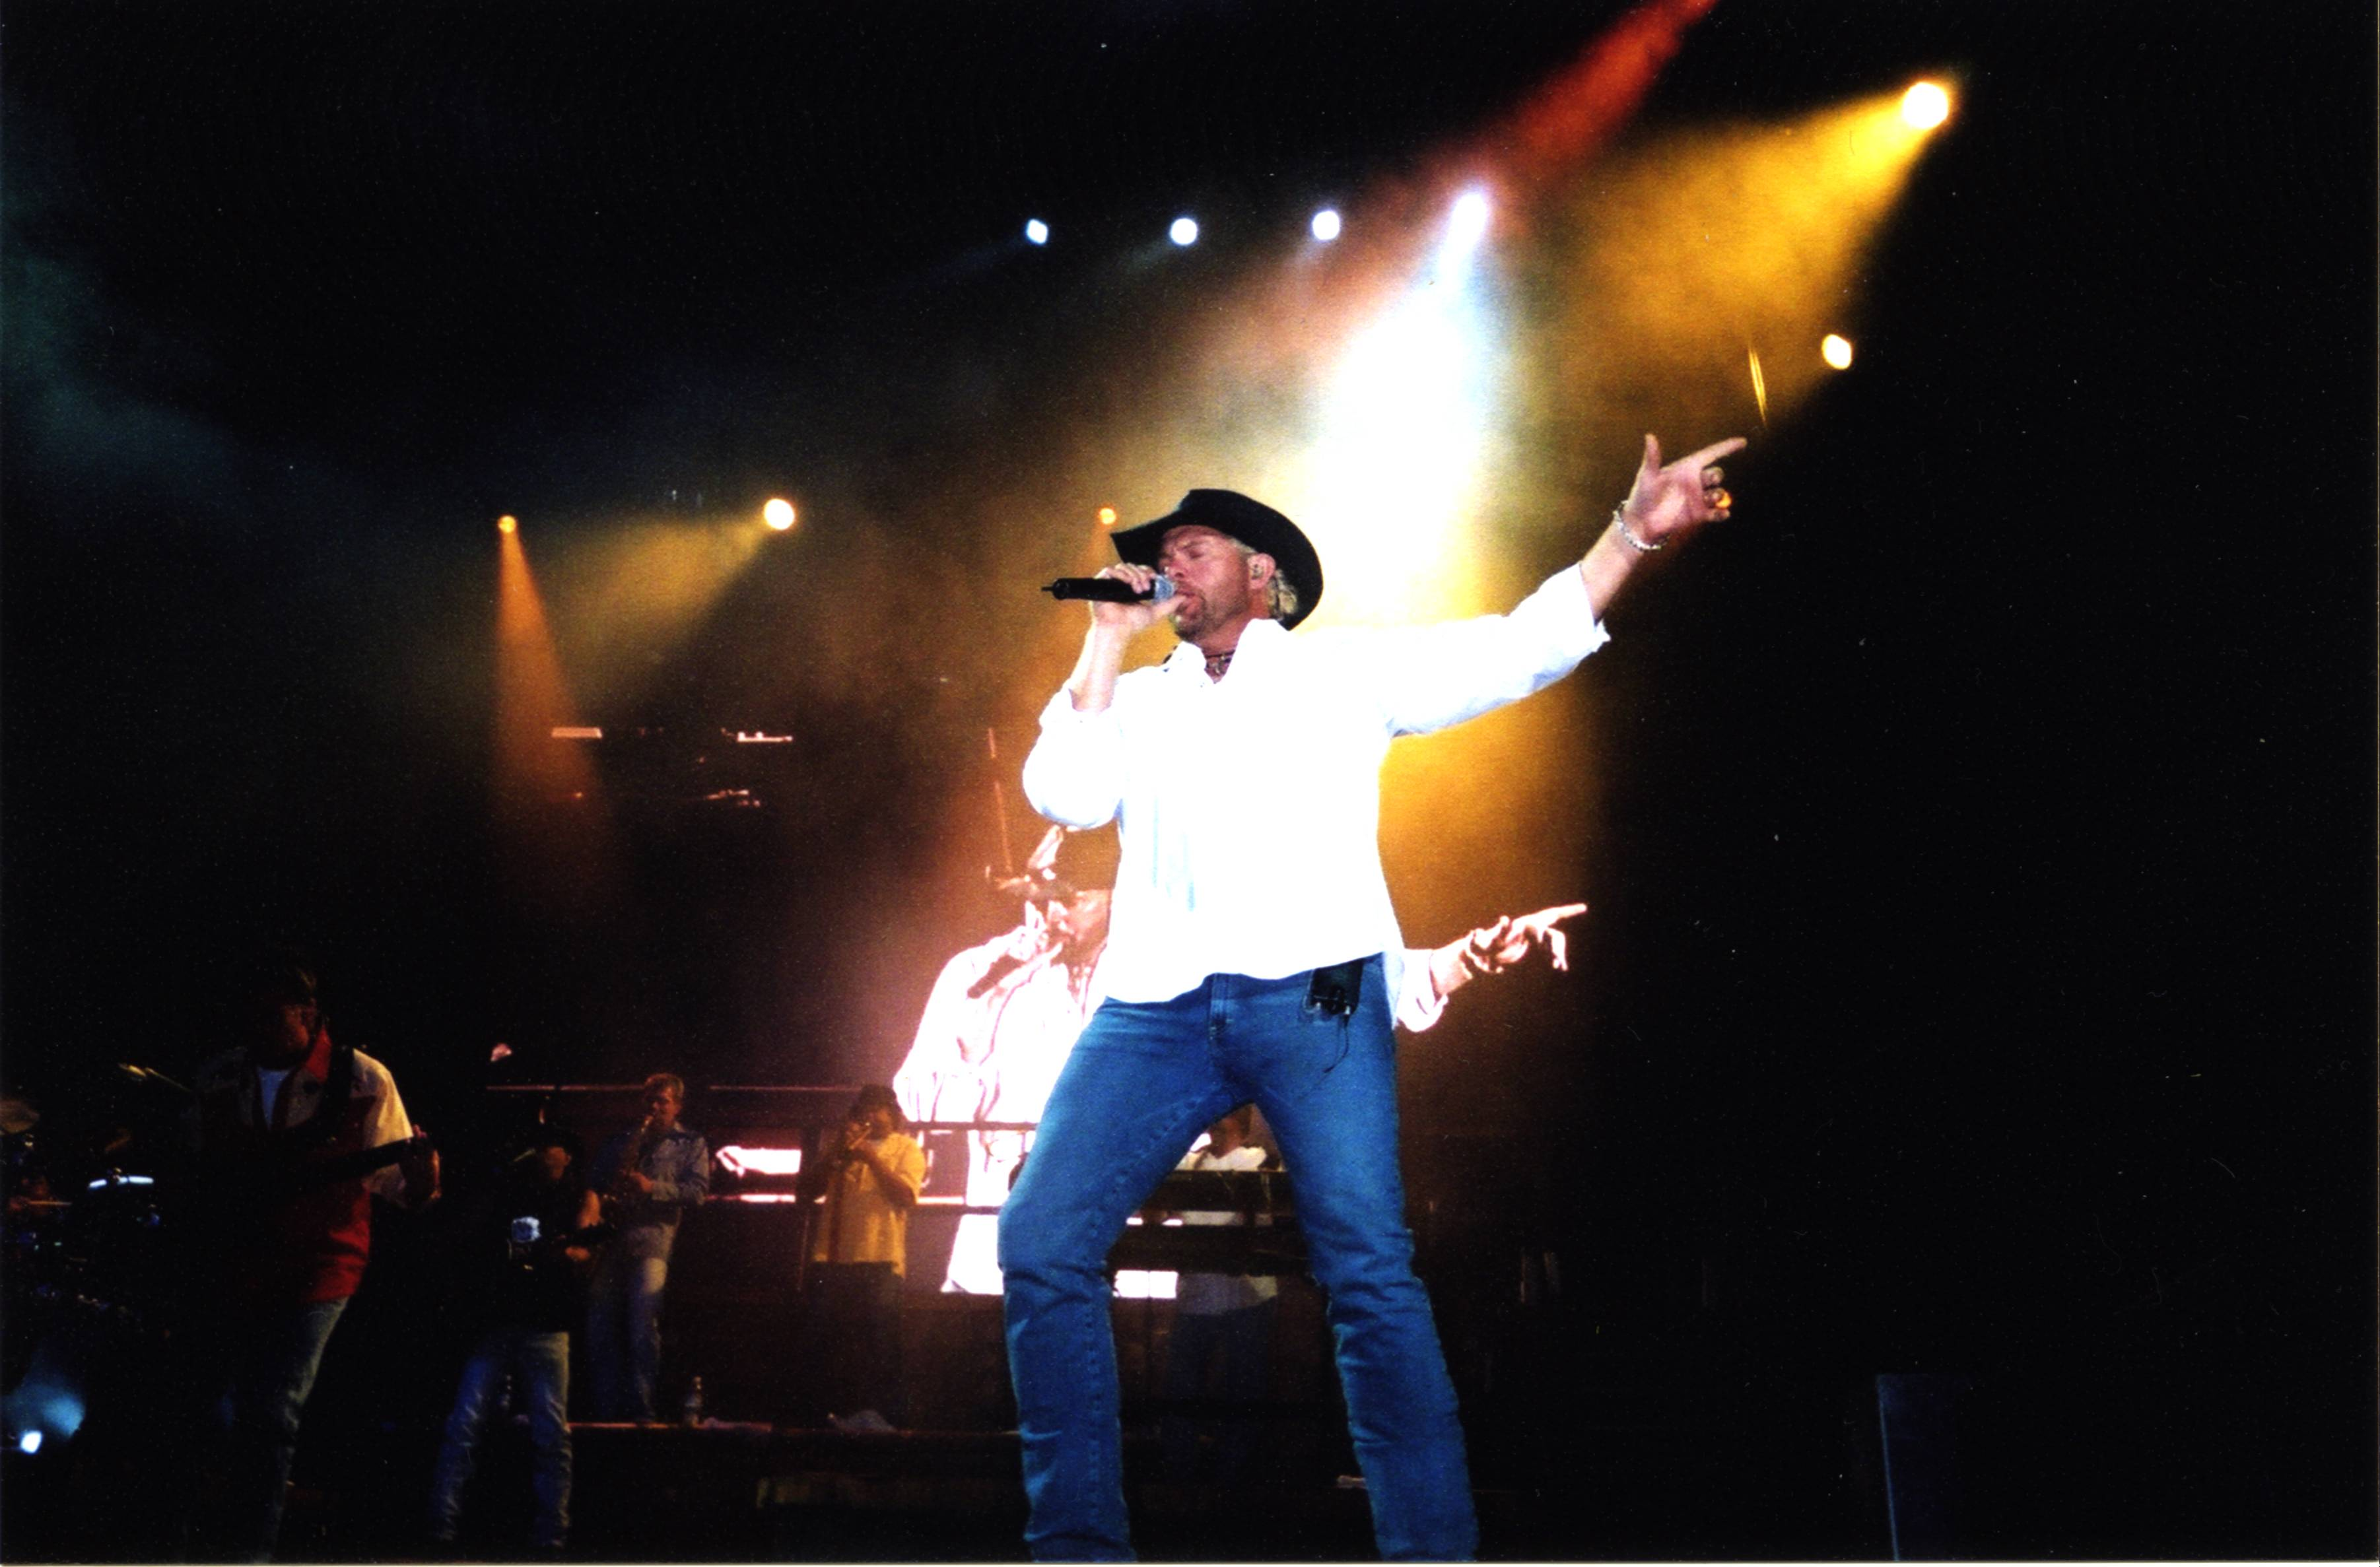 Toby Keith Tickets Harveys Outdoor Arena Lake Tahoe